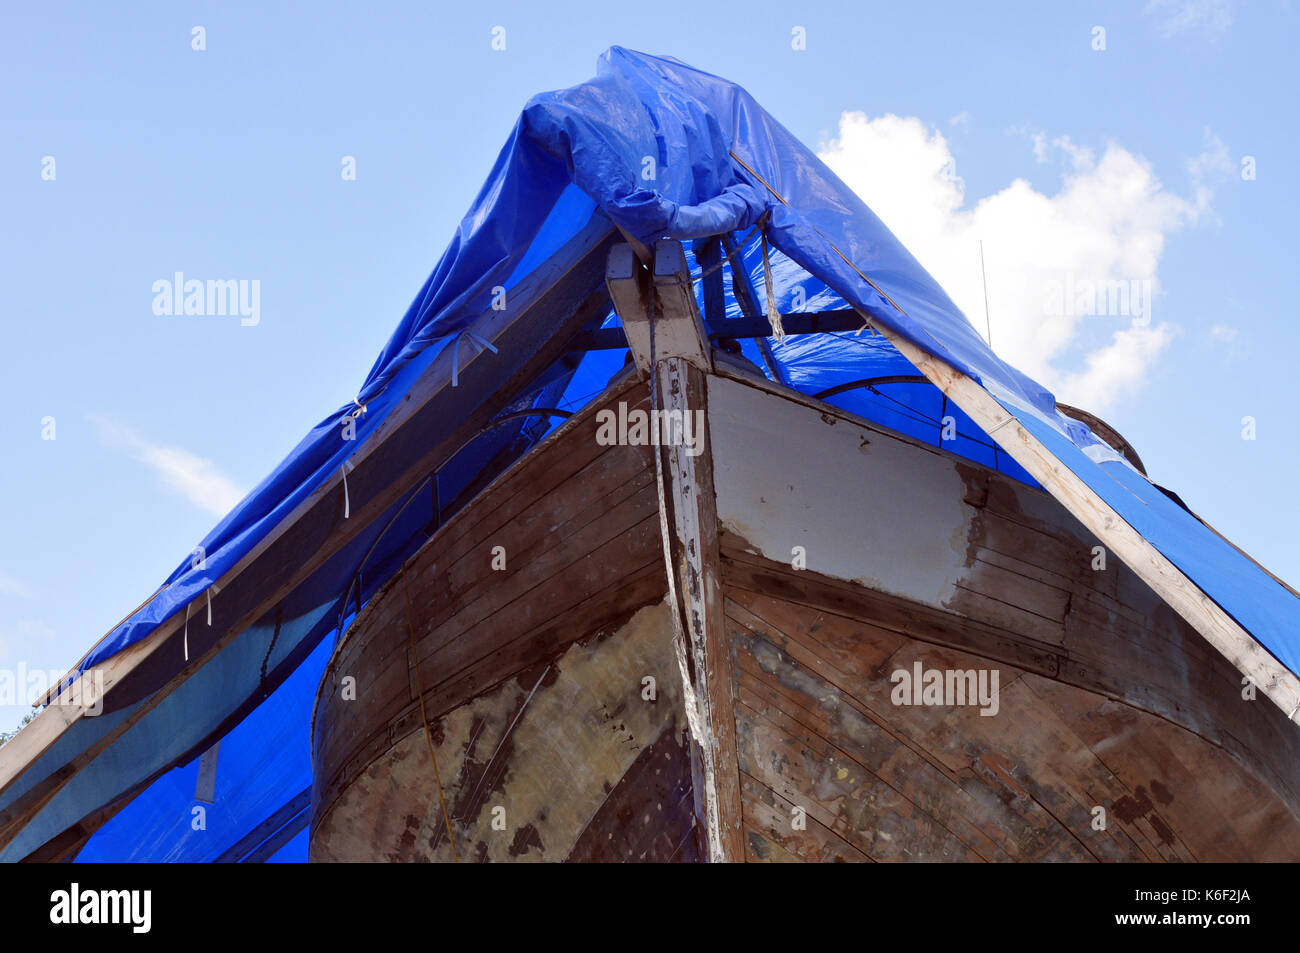 Bow of a Wooden Boat in dry dock and covered with a blue tarp - Stock Image